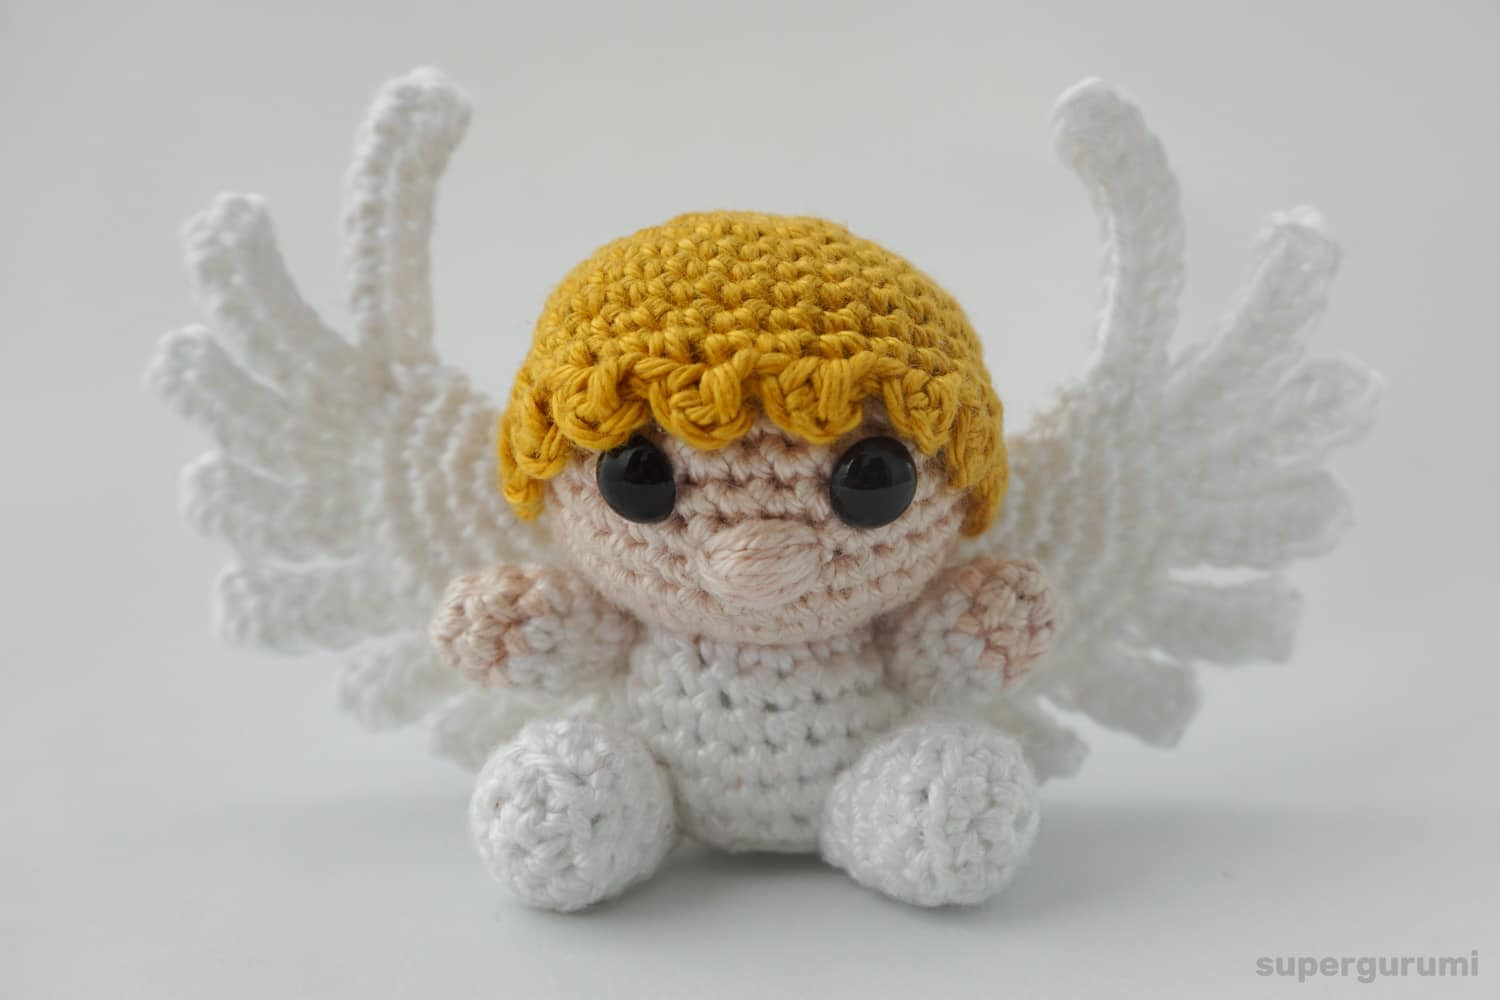 Crochet Angel Pattern Unique Amigurumi Crochet Angel Pattern Supergurumi Of Brilliant 43 Pictures Crochet Angel Pattern